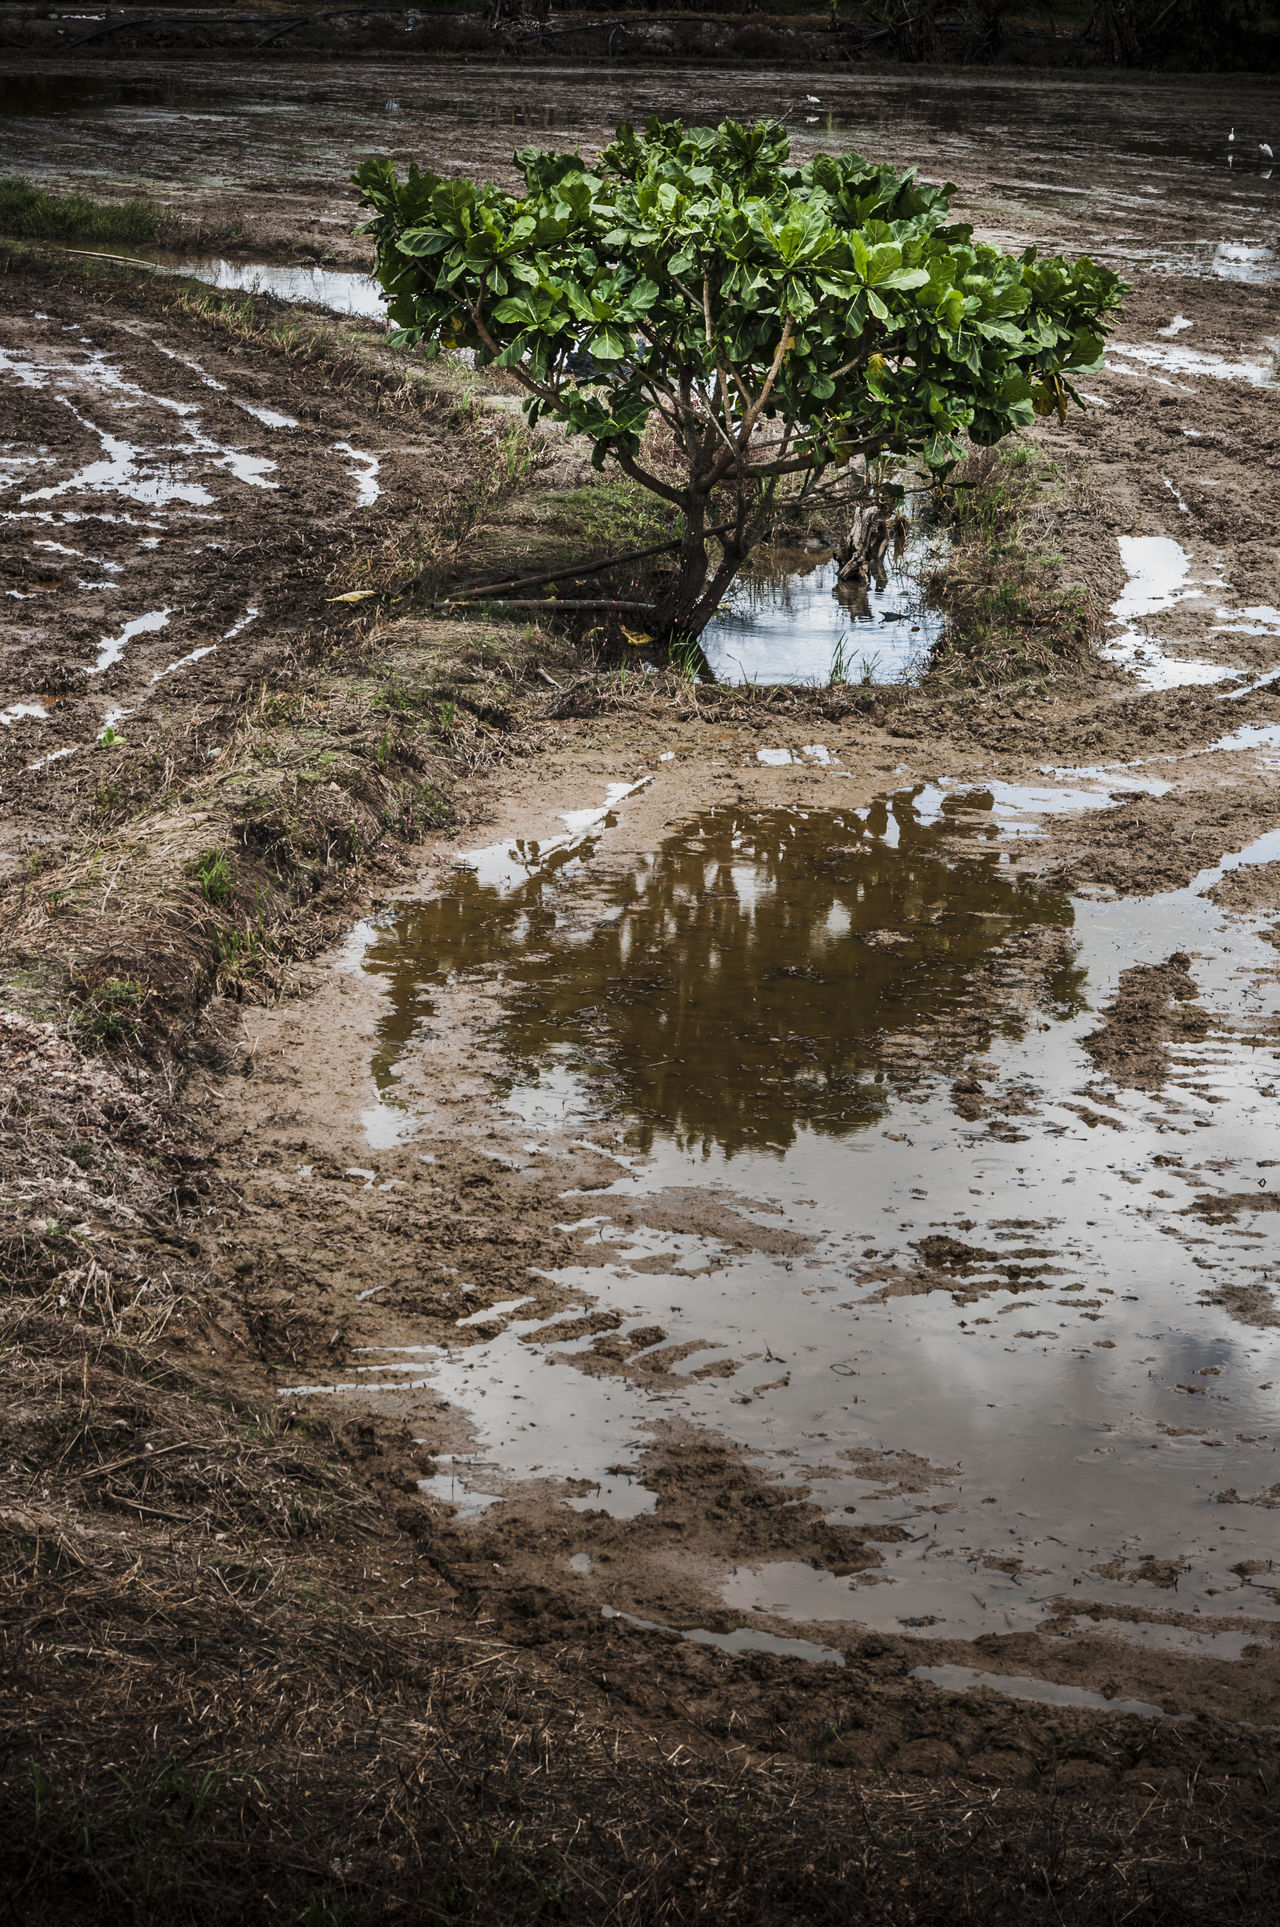 Beauty In Nature Calm Curves Field Ground Landscapes With WhiteWall Lines Nature Reflection Scenics Soil Tranquil Scene Tranquility Tree Water